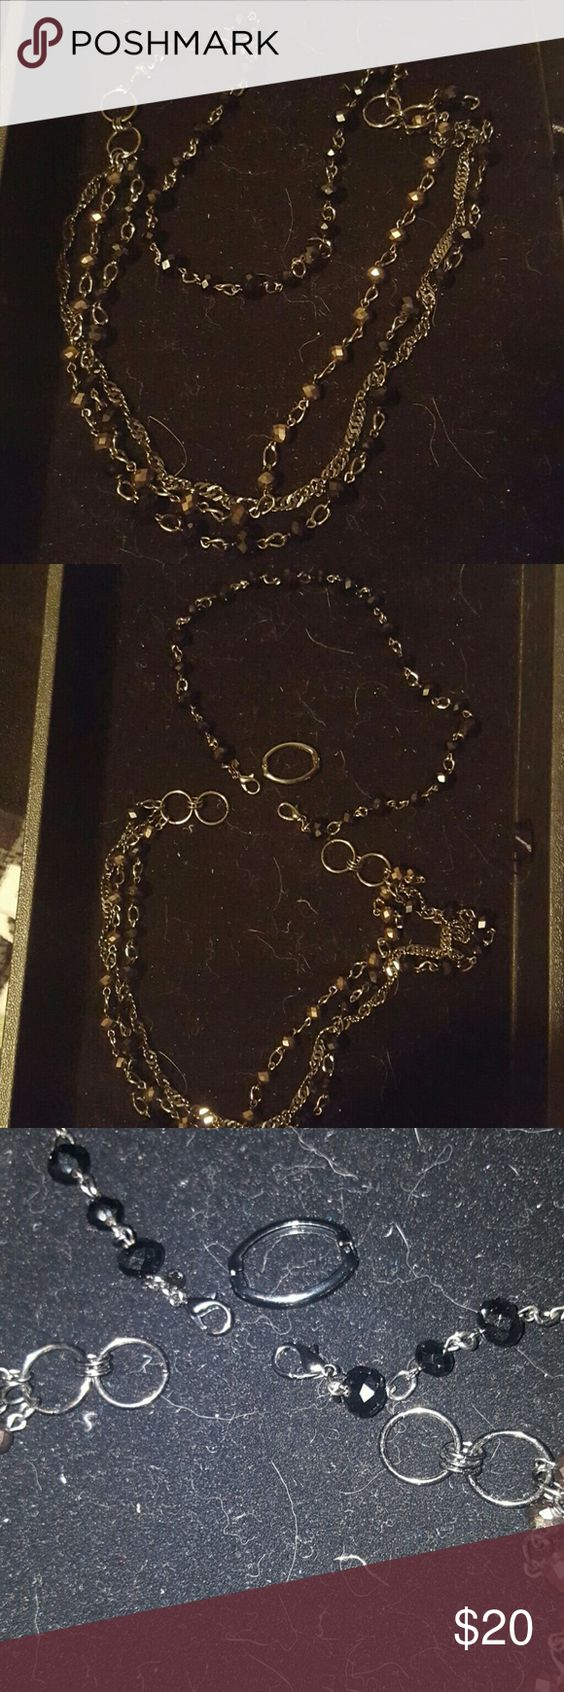 """Premier Designs """"Instant Style"""" Necklace Hematite plated 32"""" three strand necklace with glass beads double lobster claw closure. Comes with hematite plated clip it for more versatility. Premier Designs Jewelry Necklaces"""